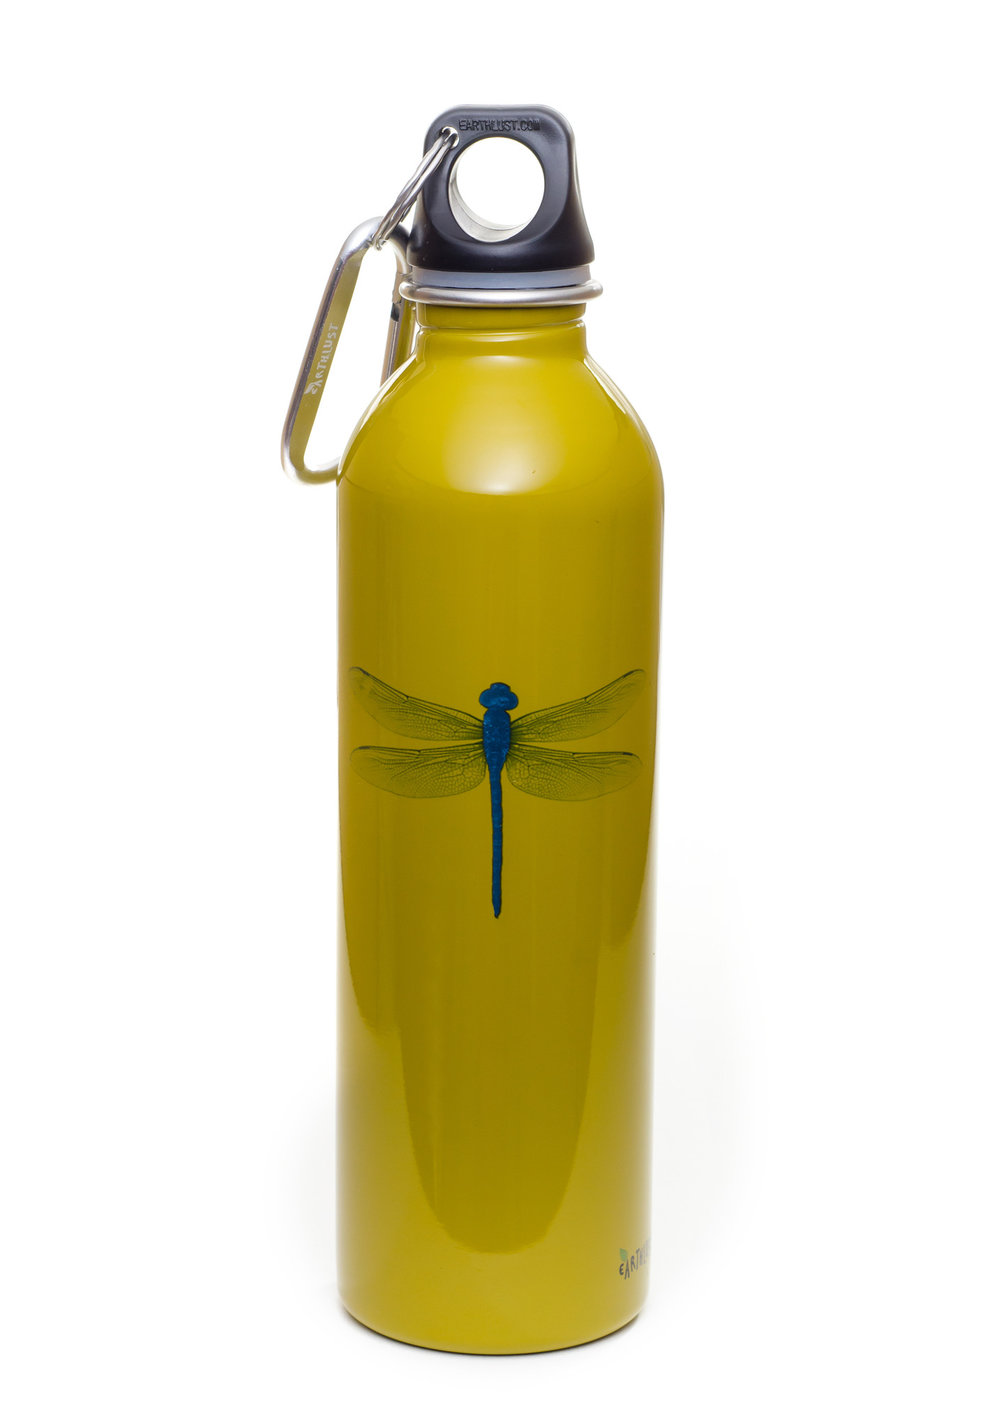 Dragonfly design, 20 oz. bottle.